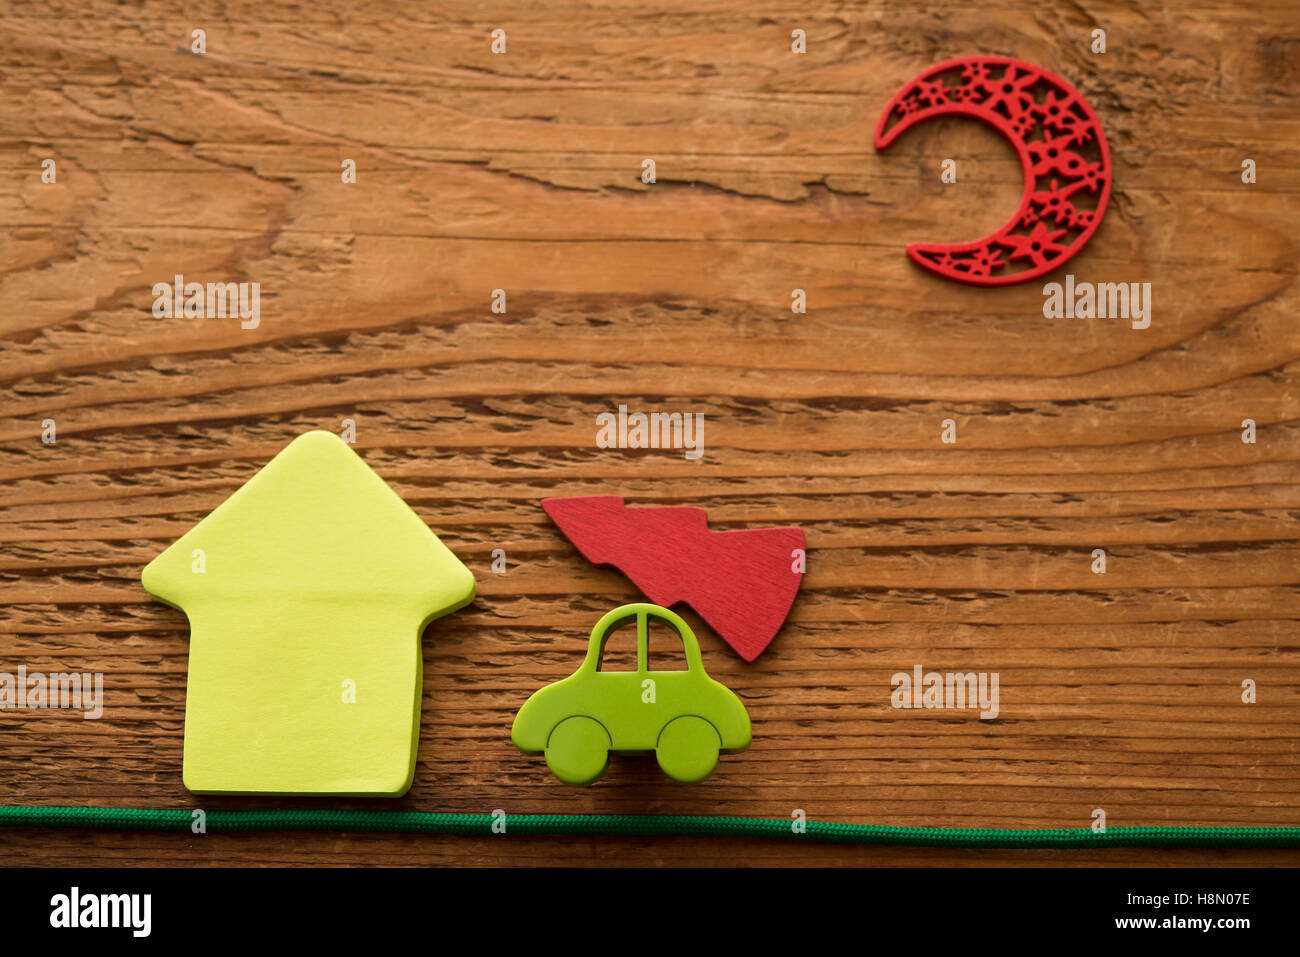 Christmas card. Merry Christmas and Happy New Year. Christmas tree move on green car near house under red moon. - Stock Image